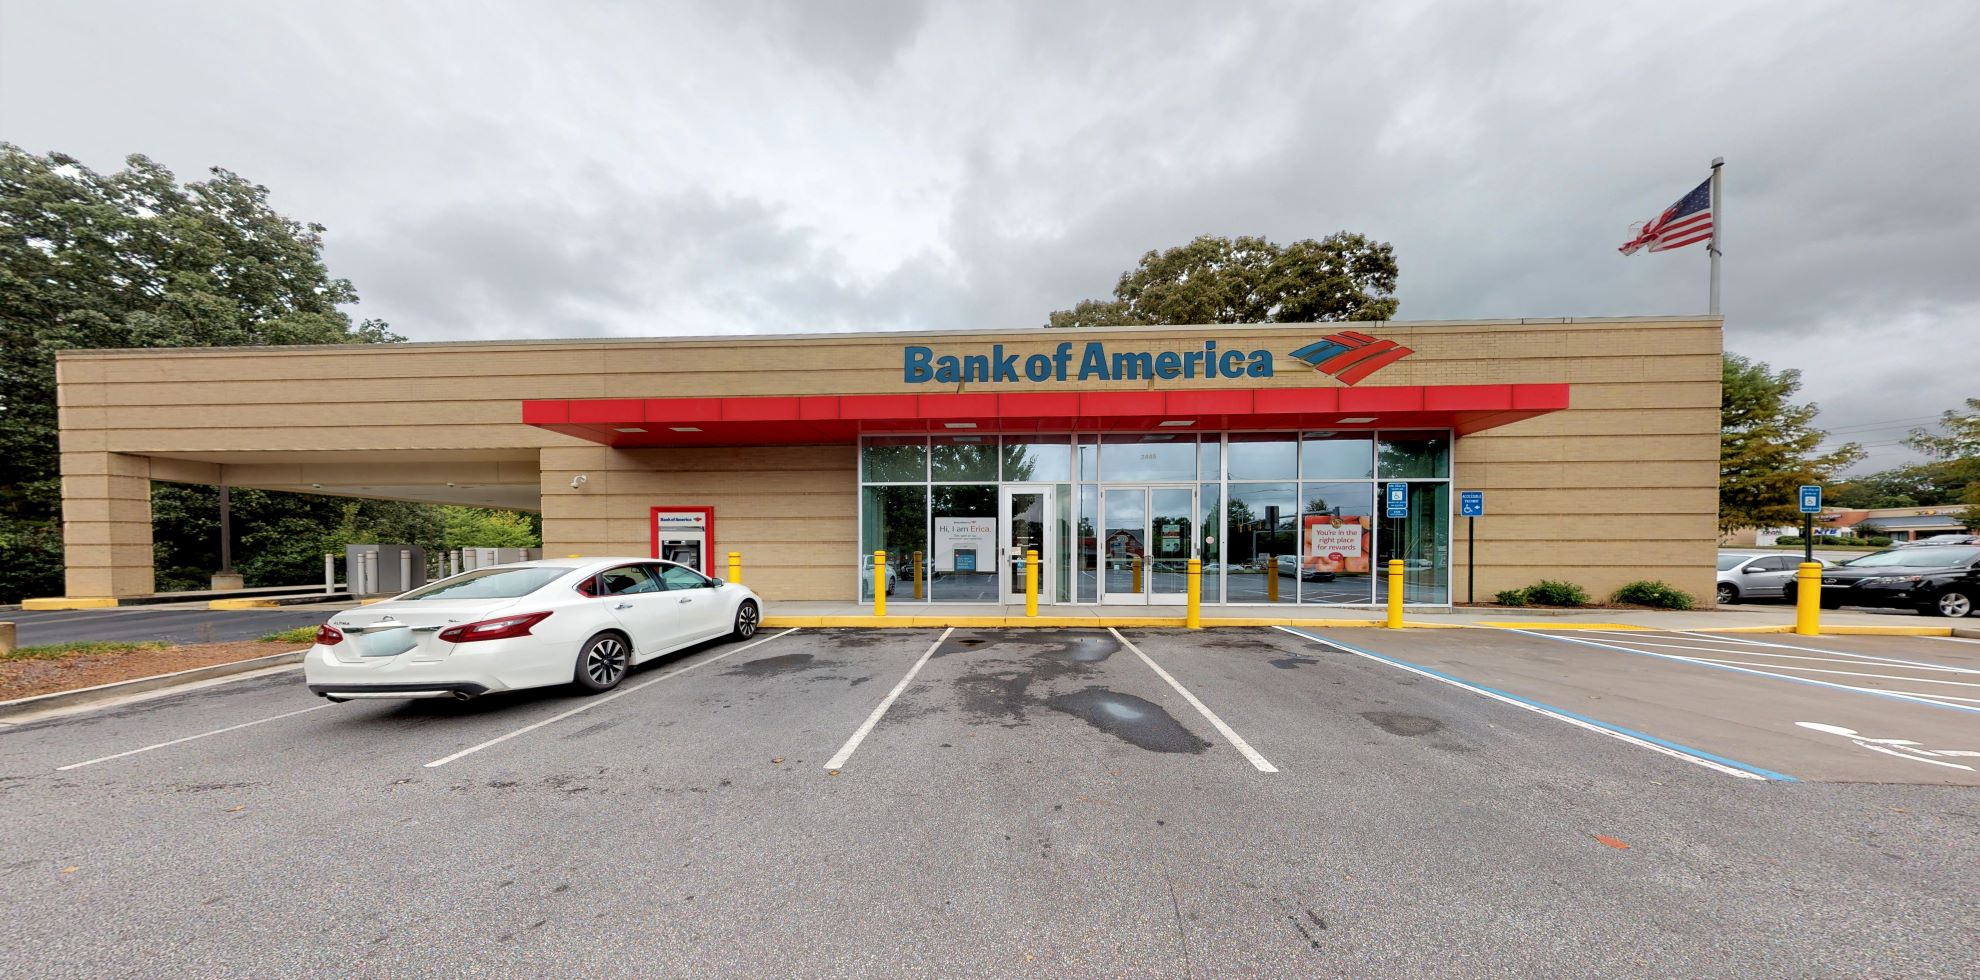 Bank of America financial center with drive-thru ATM | 2465 Roswell Rd, Marietta, GA 30062